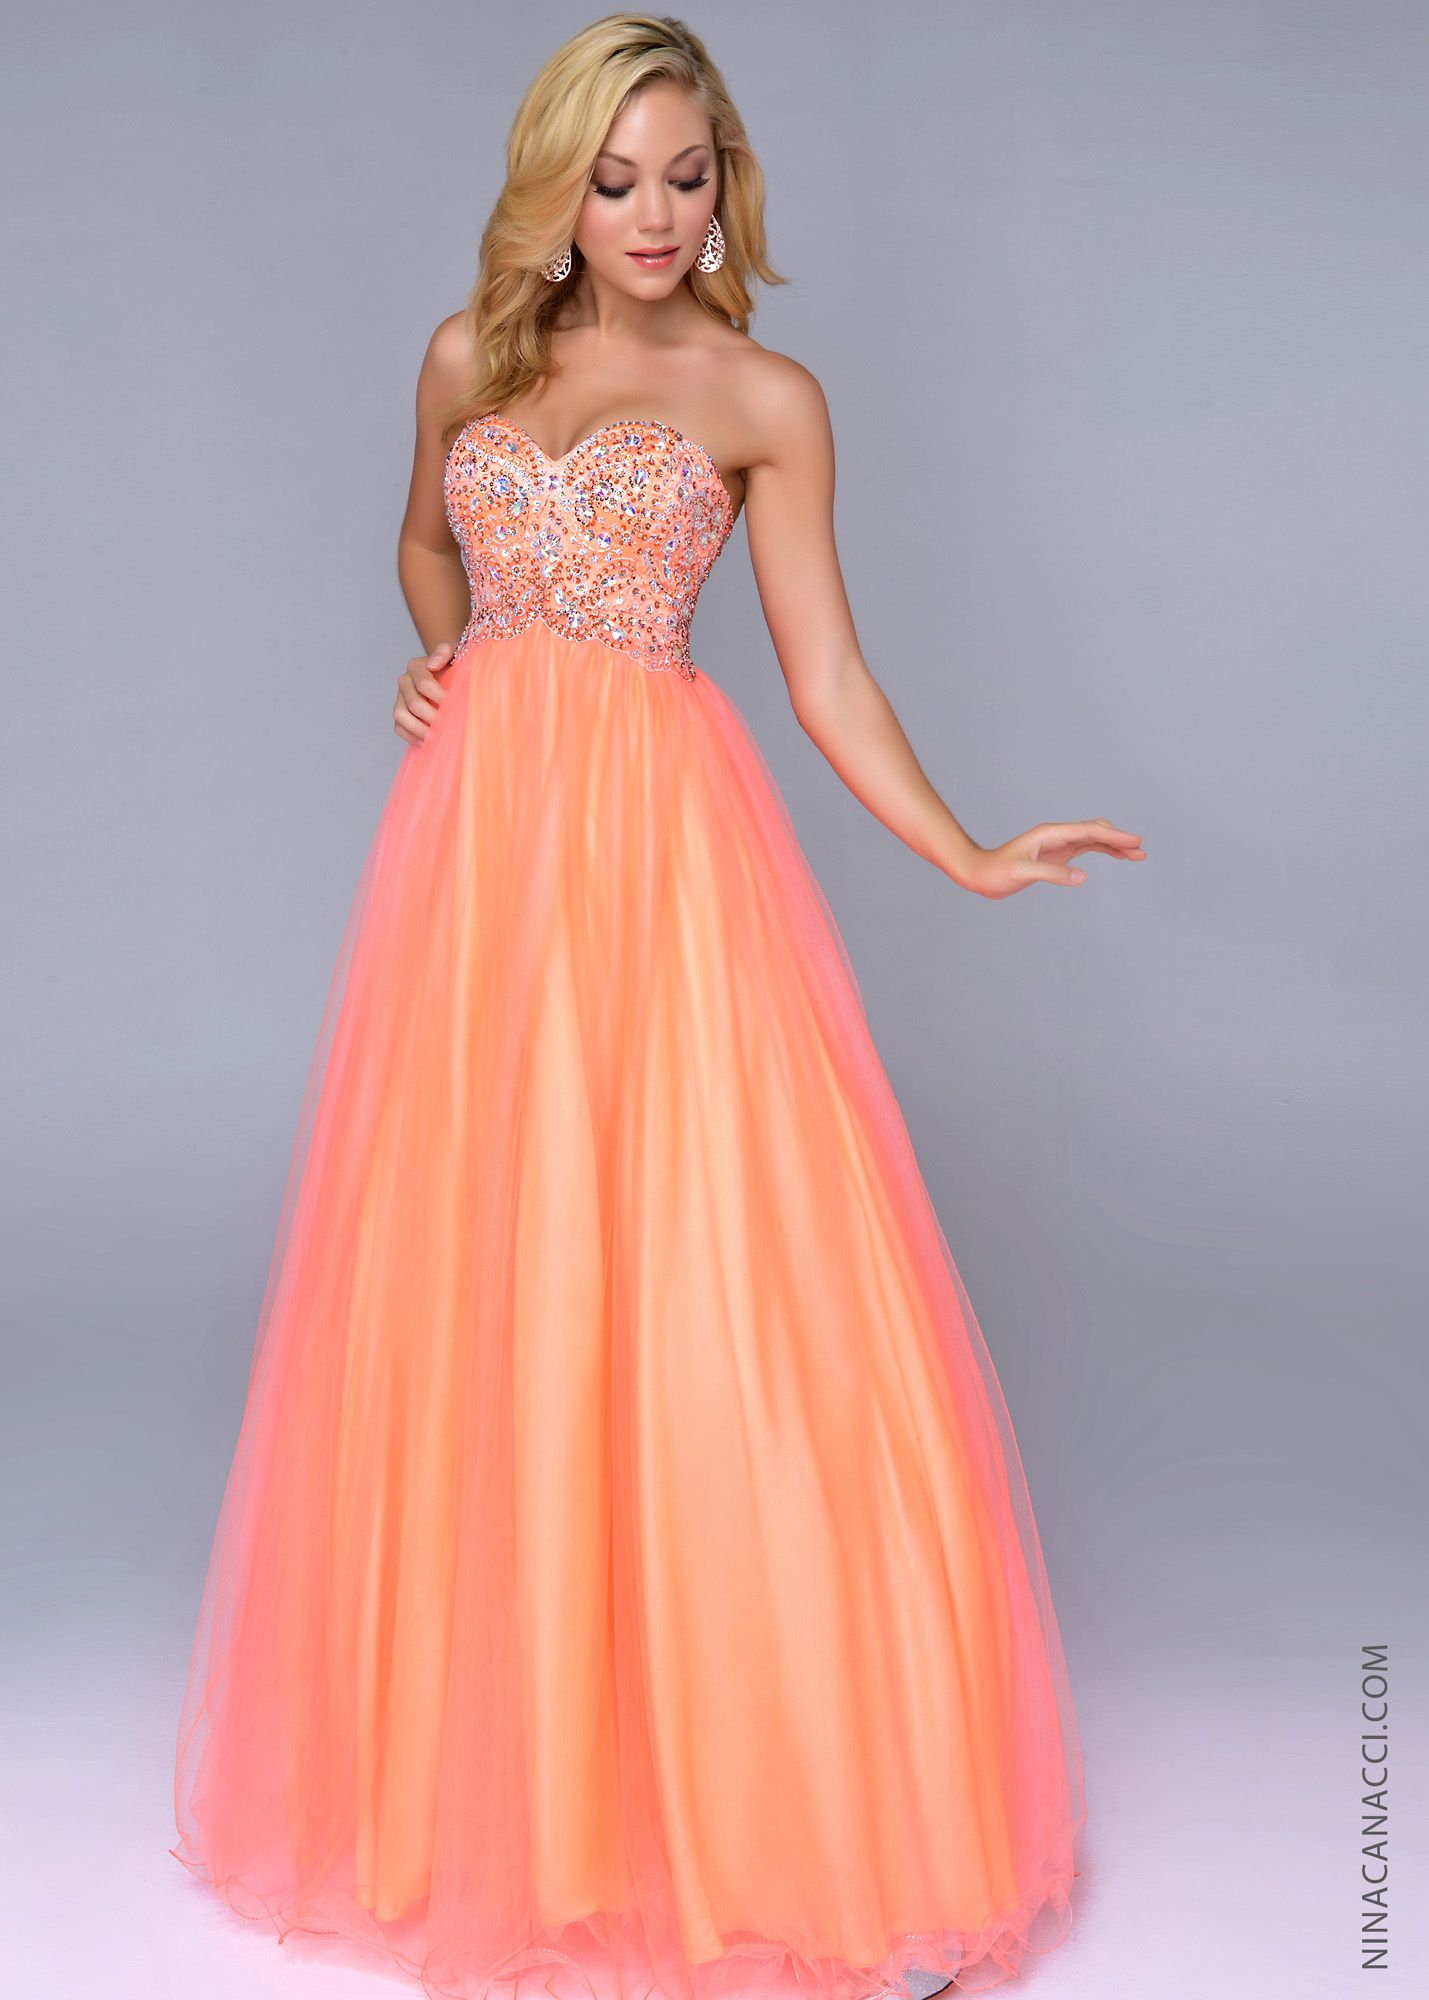 Peach Neon prom dresses pictures video